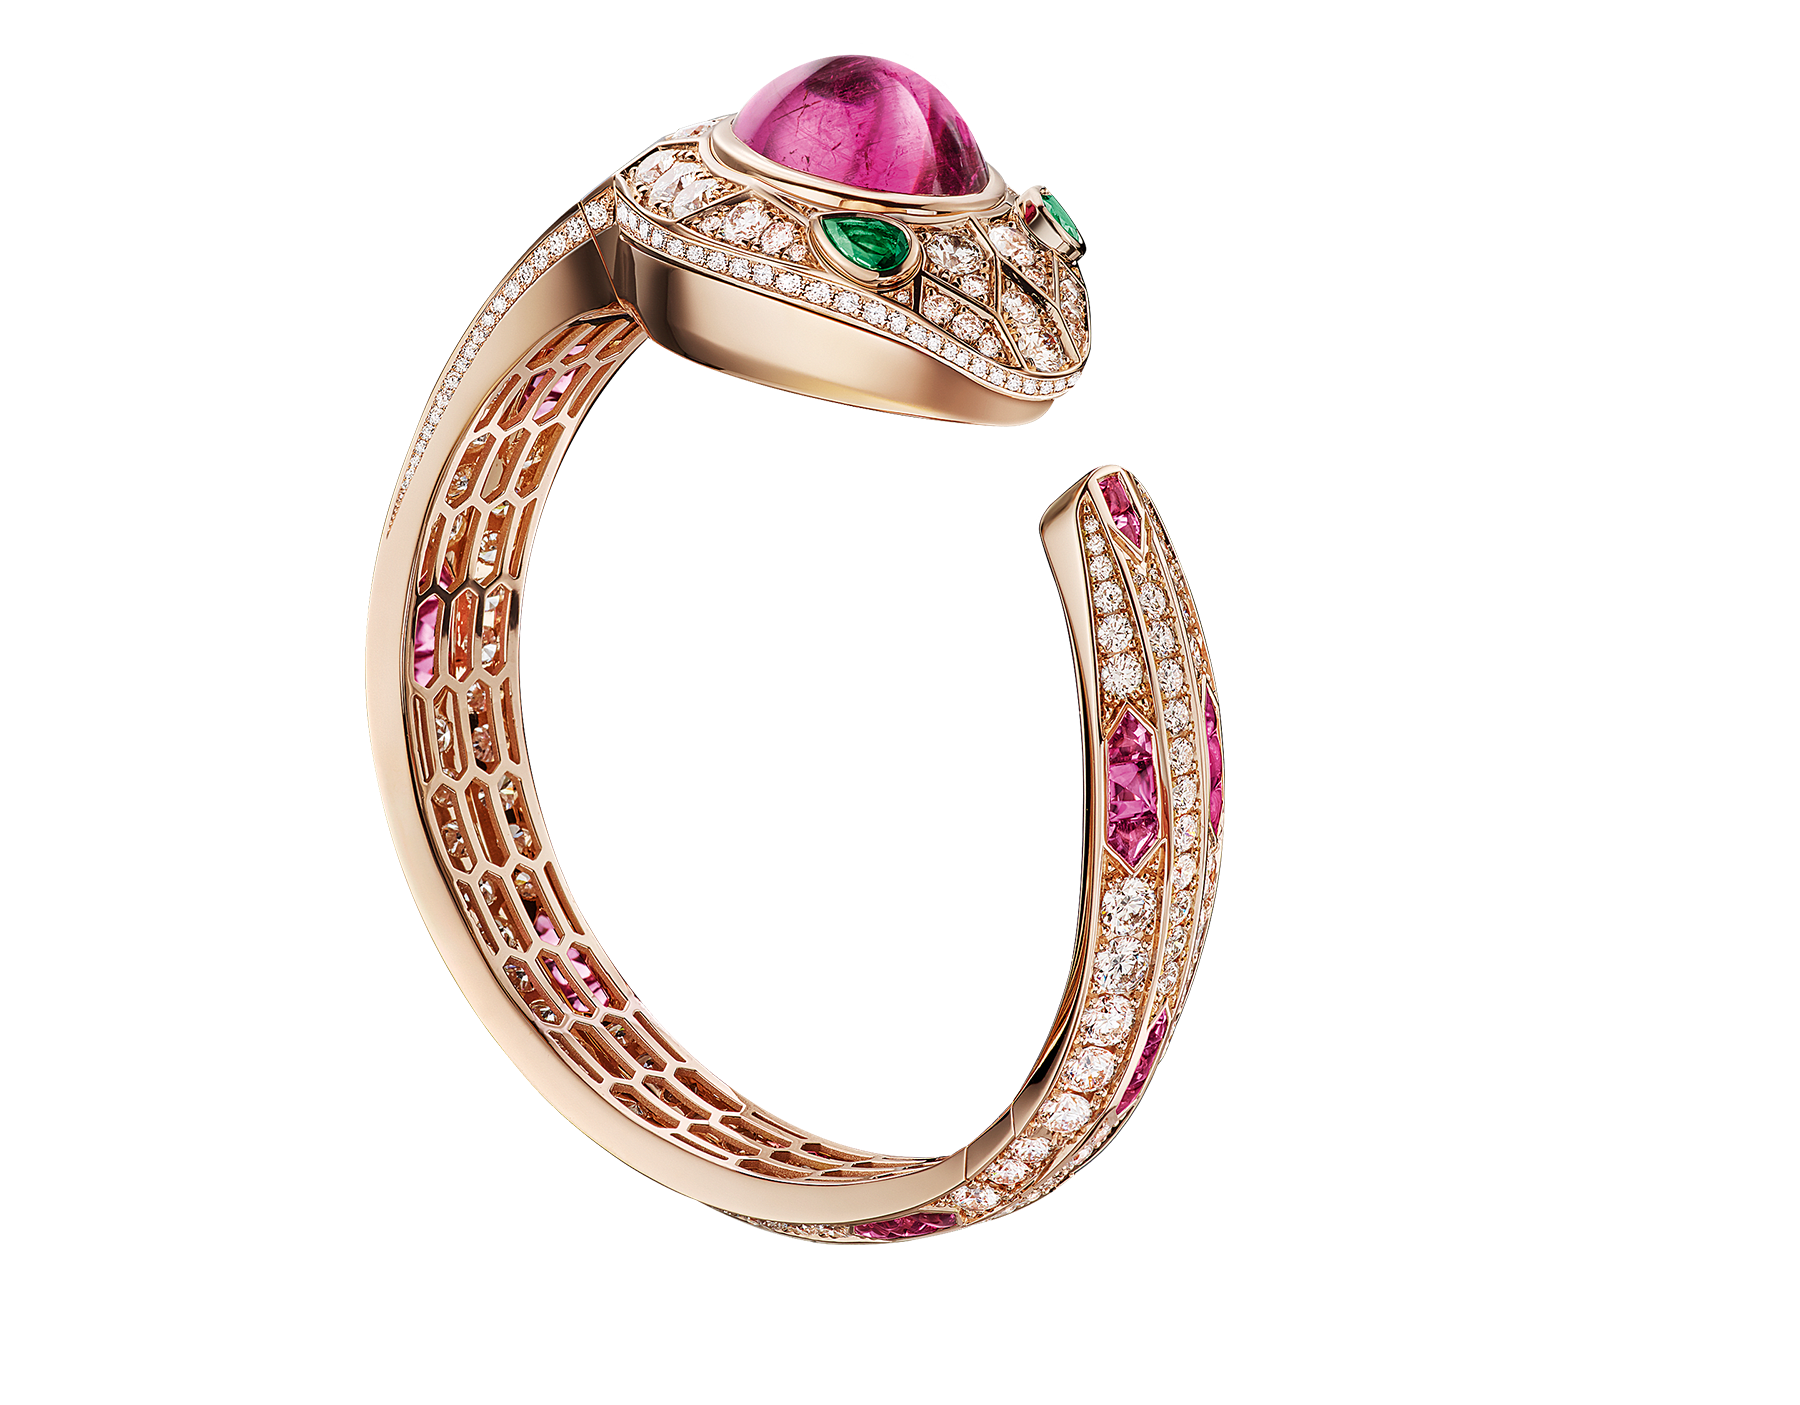 Serpenti Seduttori watch with 18 kt rose gold case and dial, 18 kt rose gold head set with brilliant cut diamonds, one cabochon cut tourmaline and emerald eyes, 18 kt rose gold bracelet set with brilliant cut diamonds and tourmalines. 102616 image 1